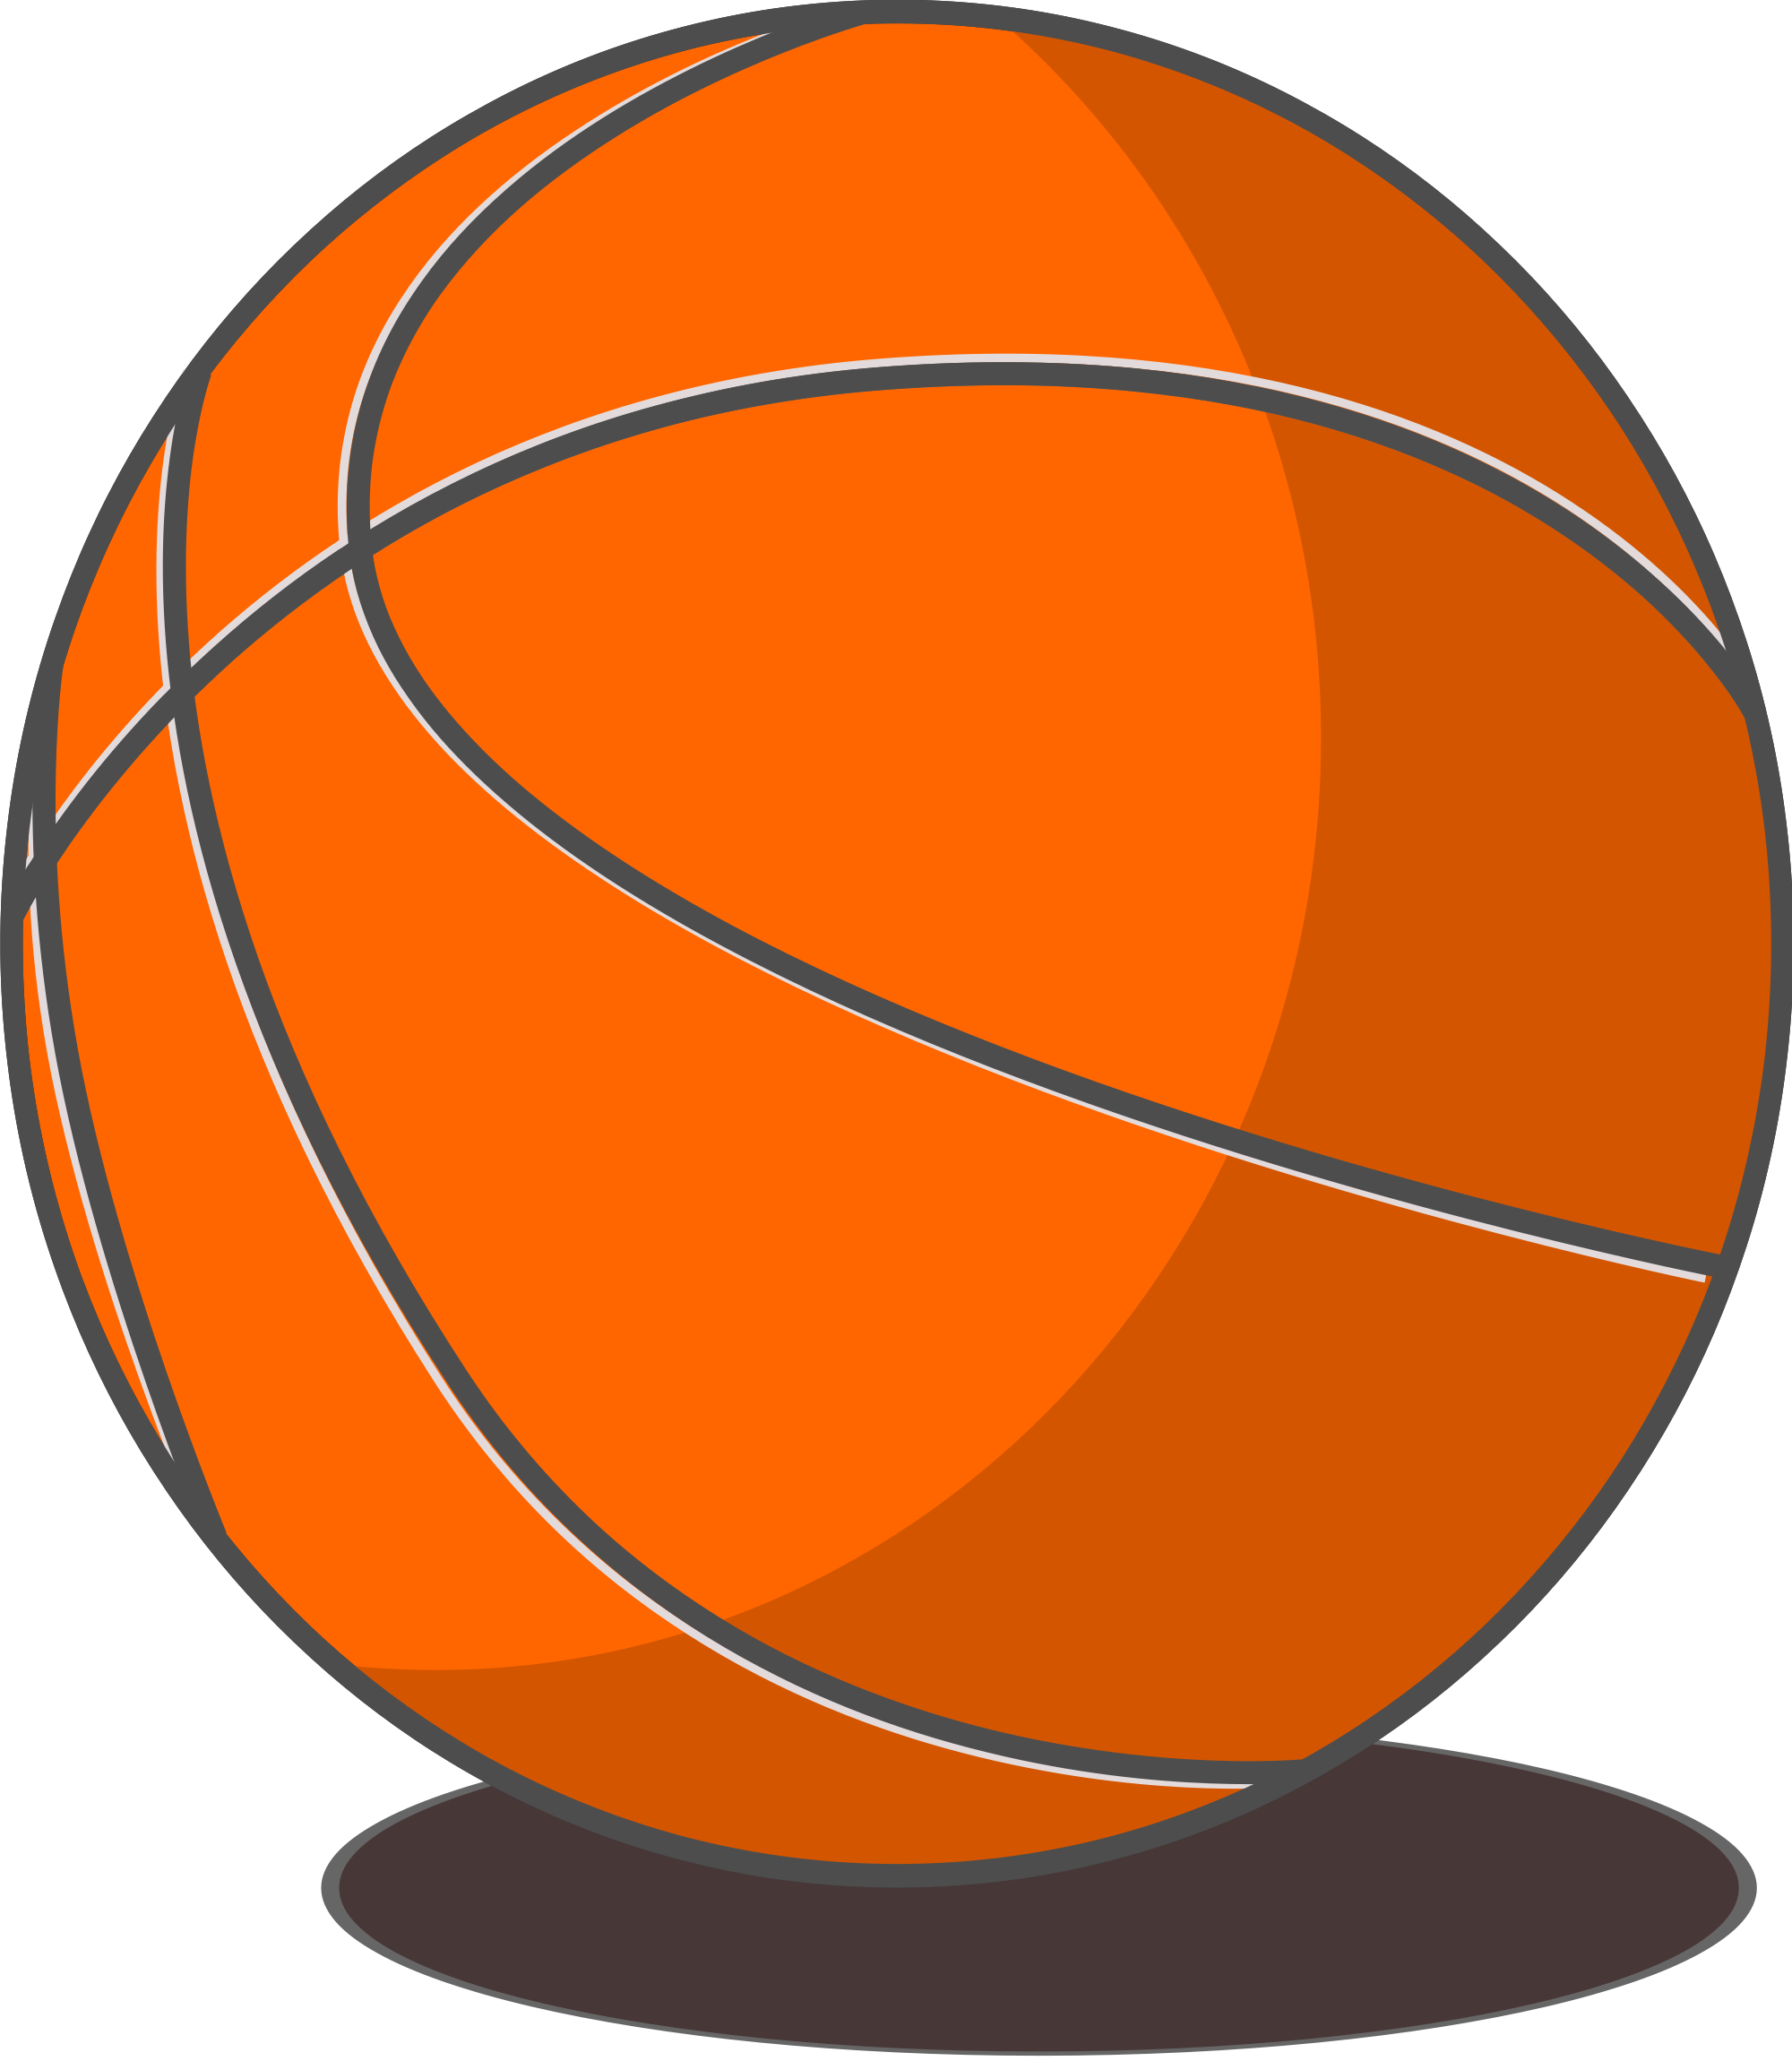 Page full of basketball clipart clipart royalty free stock File:Basketball.svg - Wikimedia Commons clipart royalty free stock